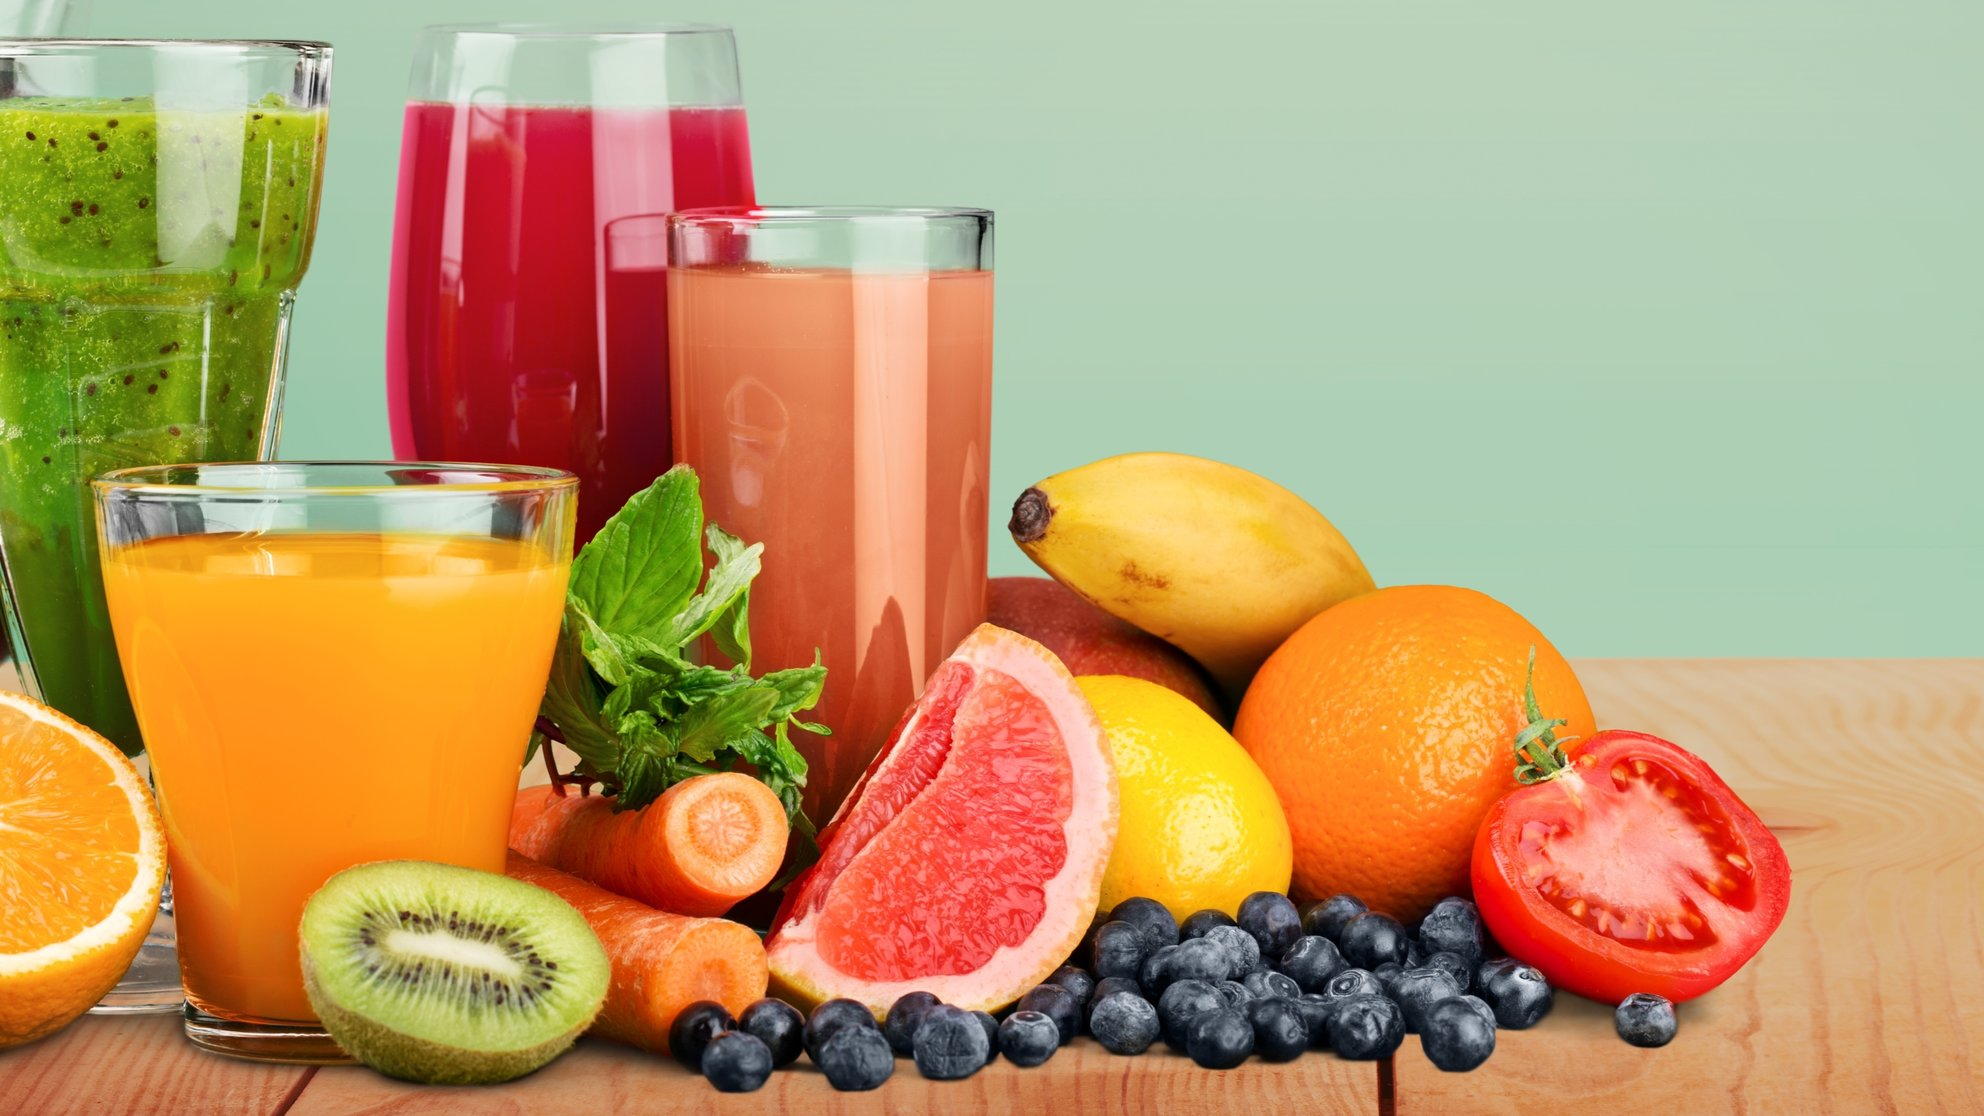 Which natural juices are the healthiest?